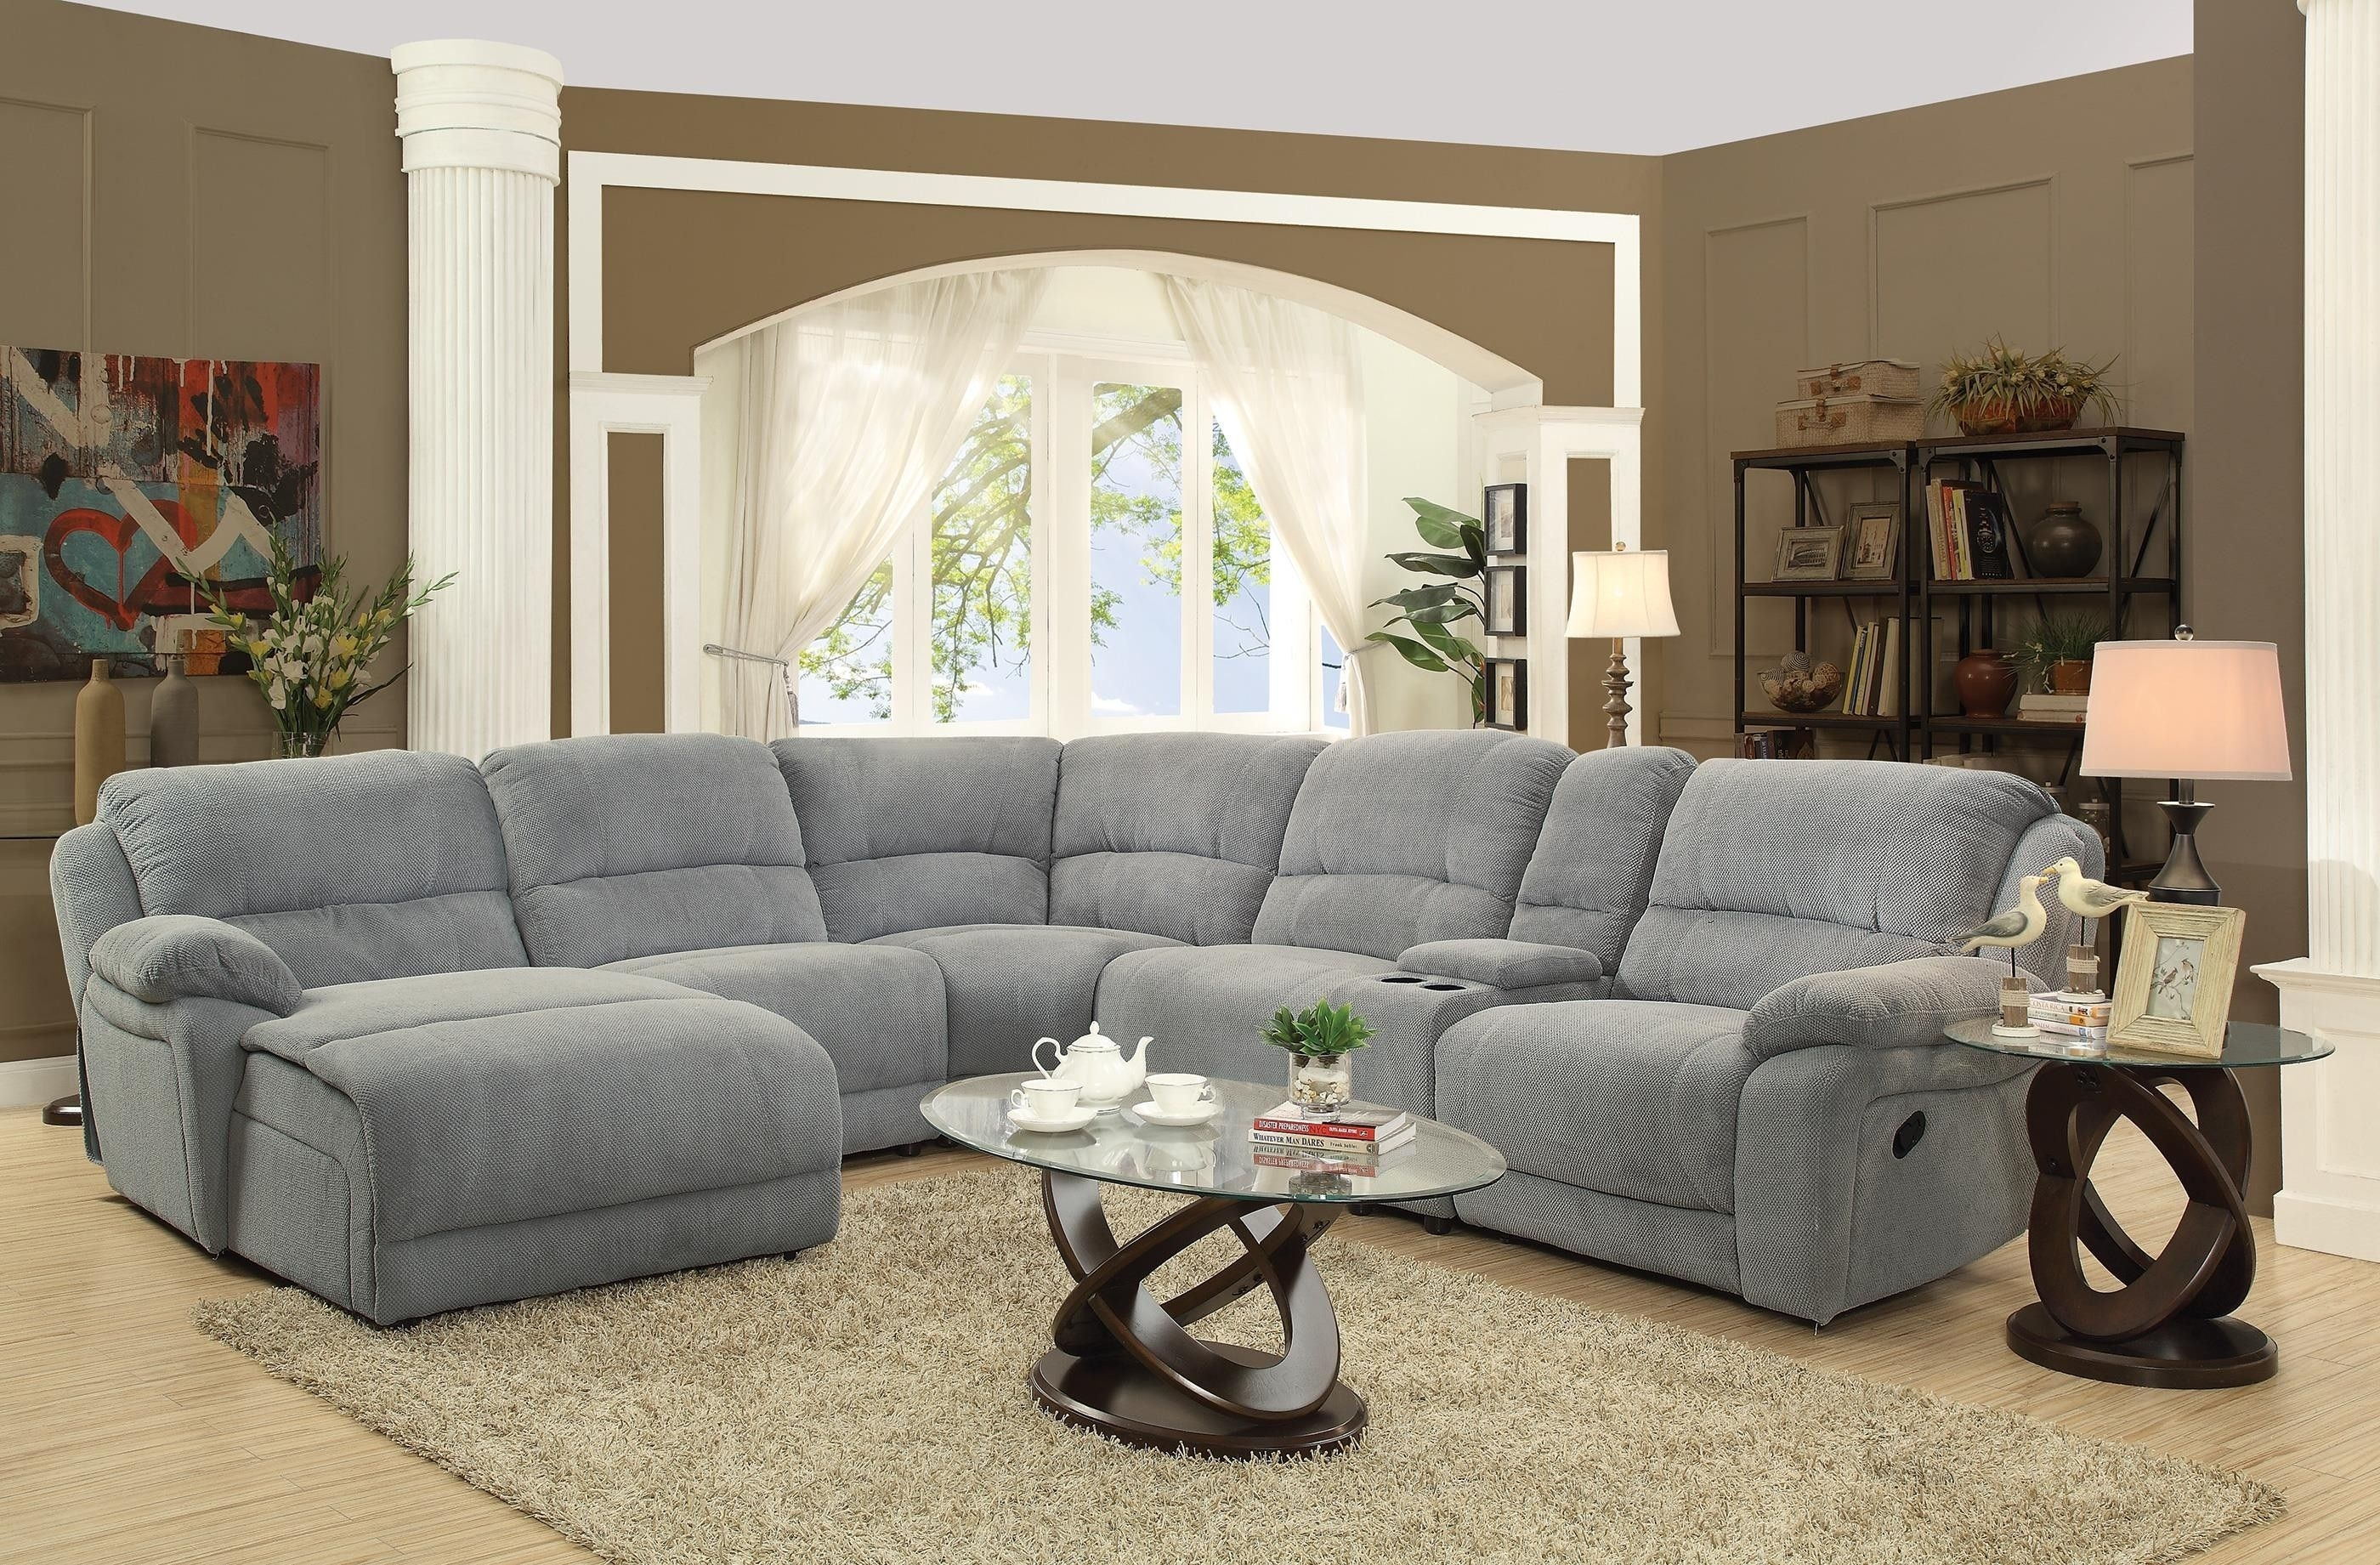 6 Piece Reclining Sectional Sofa | Baci Living Room Inside Denali Light Grey 6 Piece Reclining Sectionals With 2 Power Headrests (Photo 11 of 30)